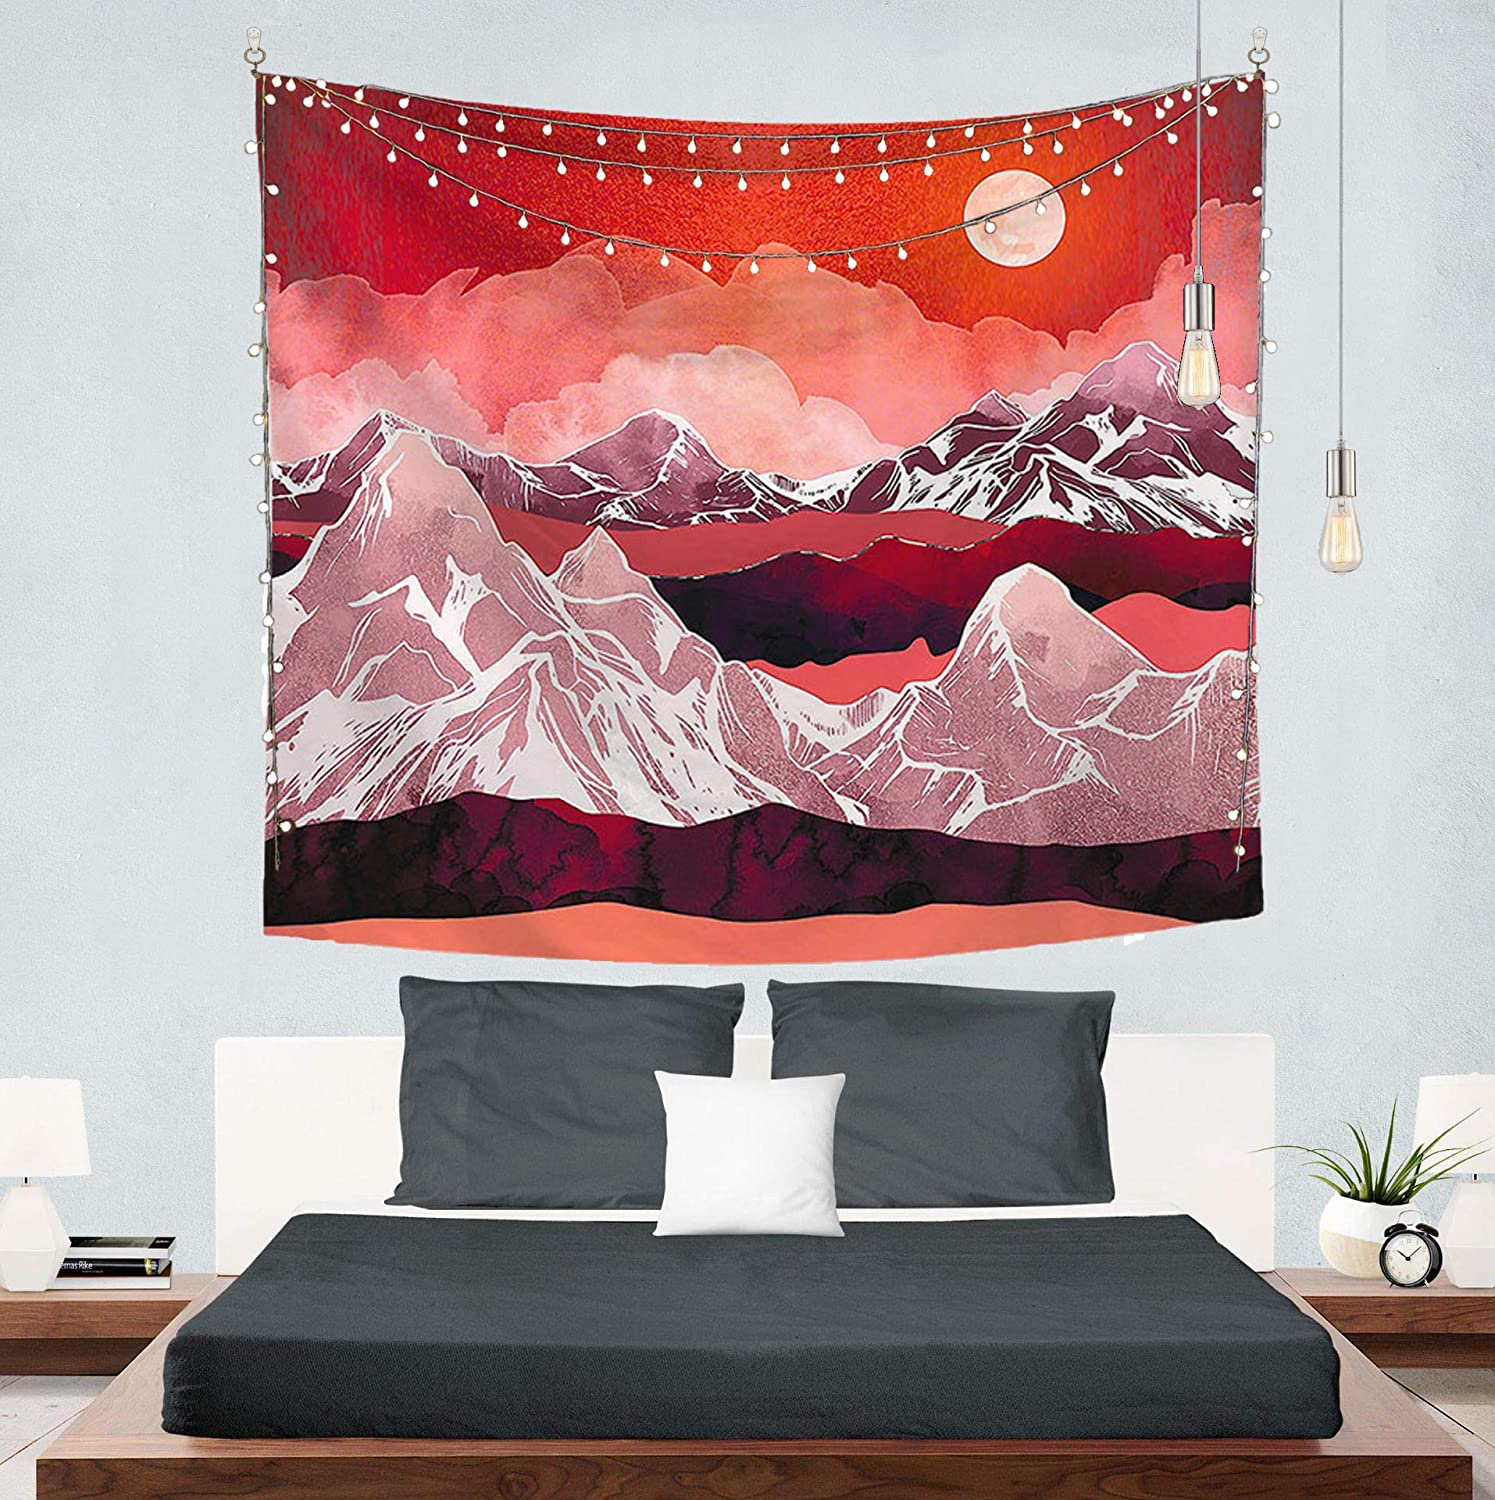 Mountain Tapestry Wall Hanging, Sunset Tapestry Nature Landscape for Living Room (79 x 60 inches)